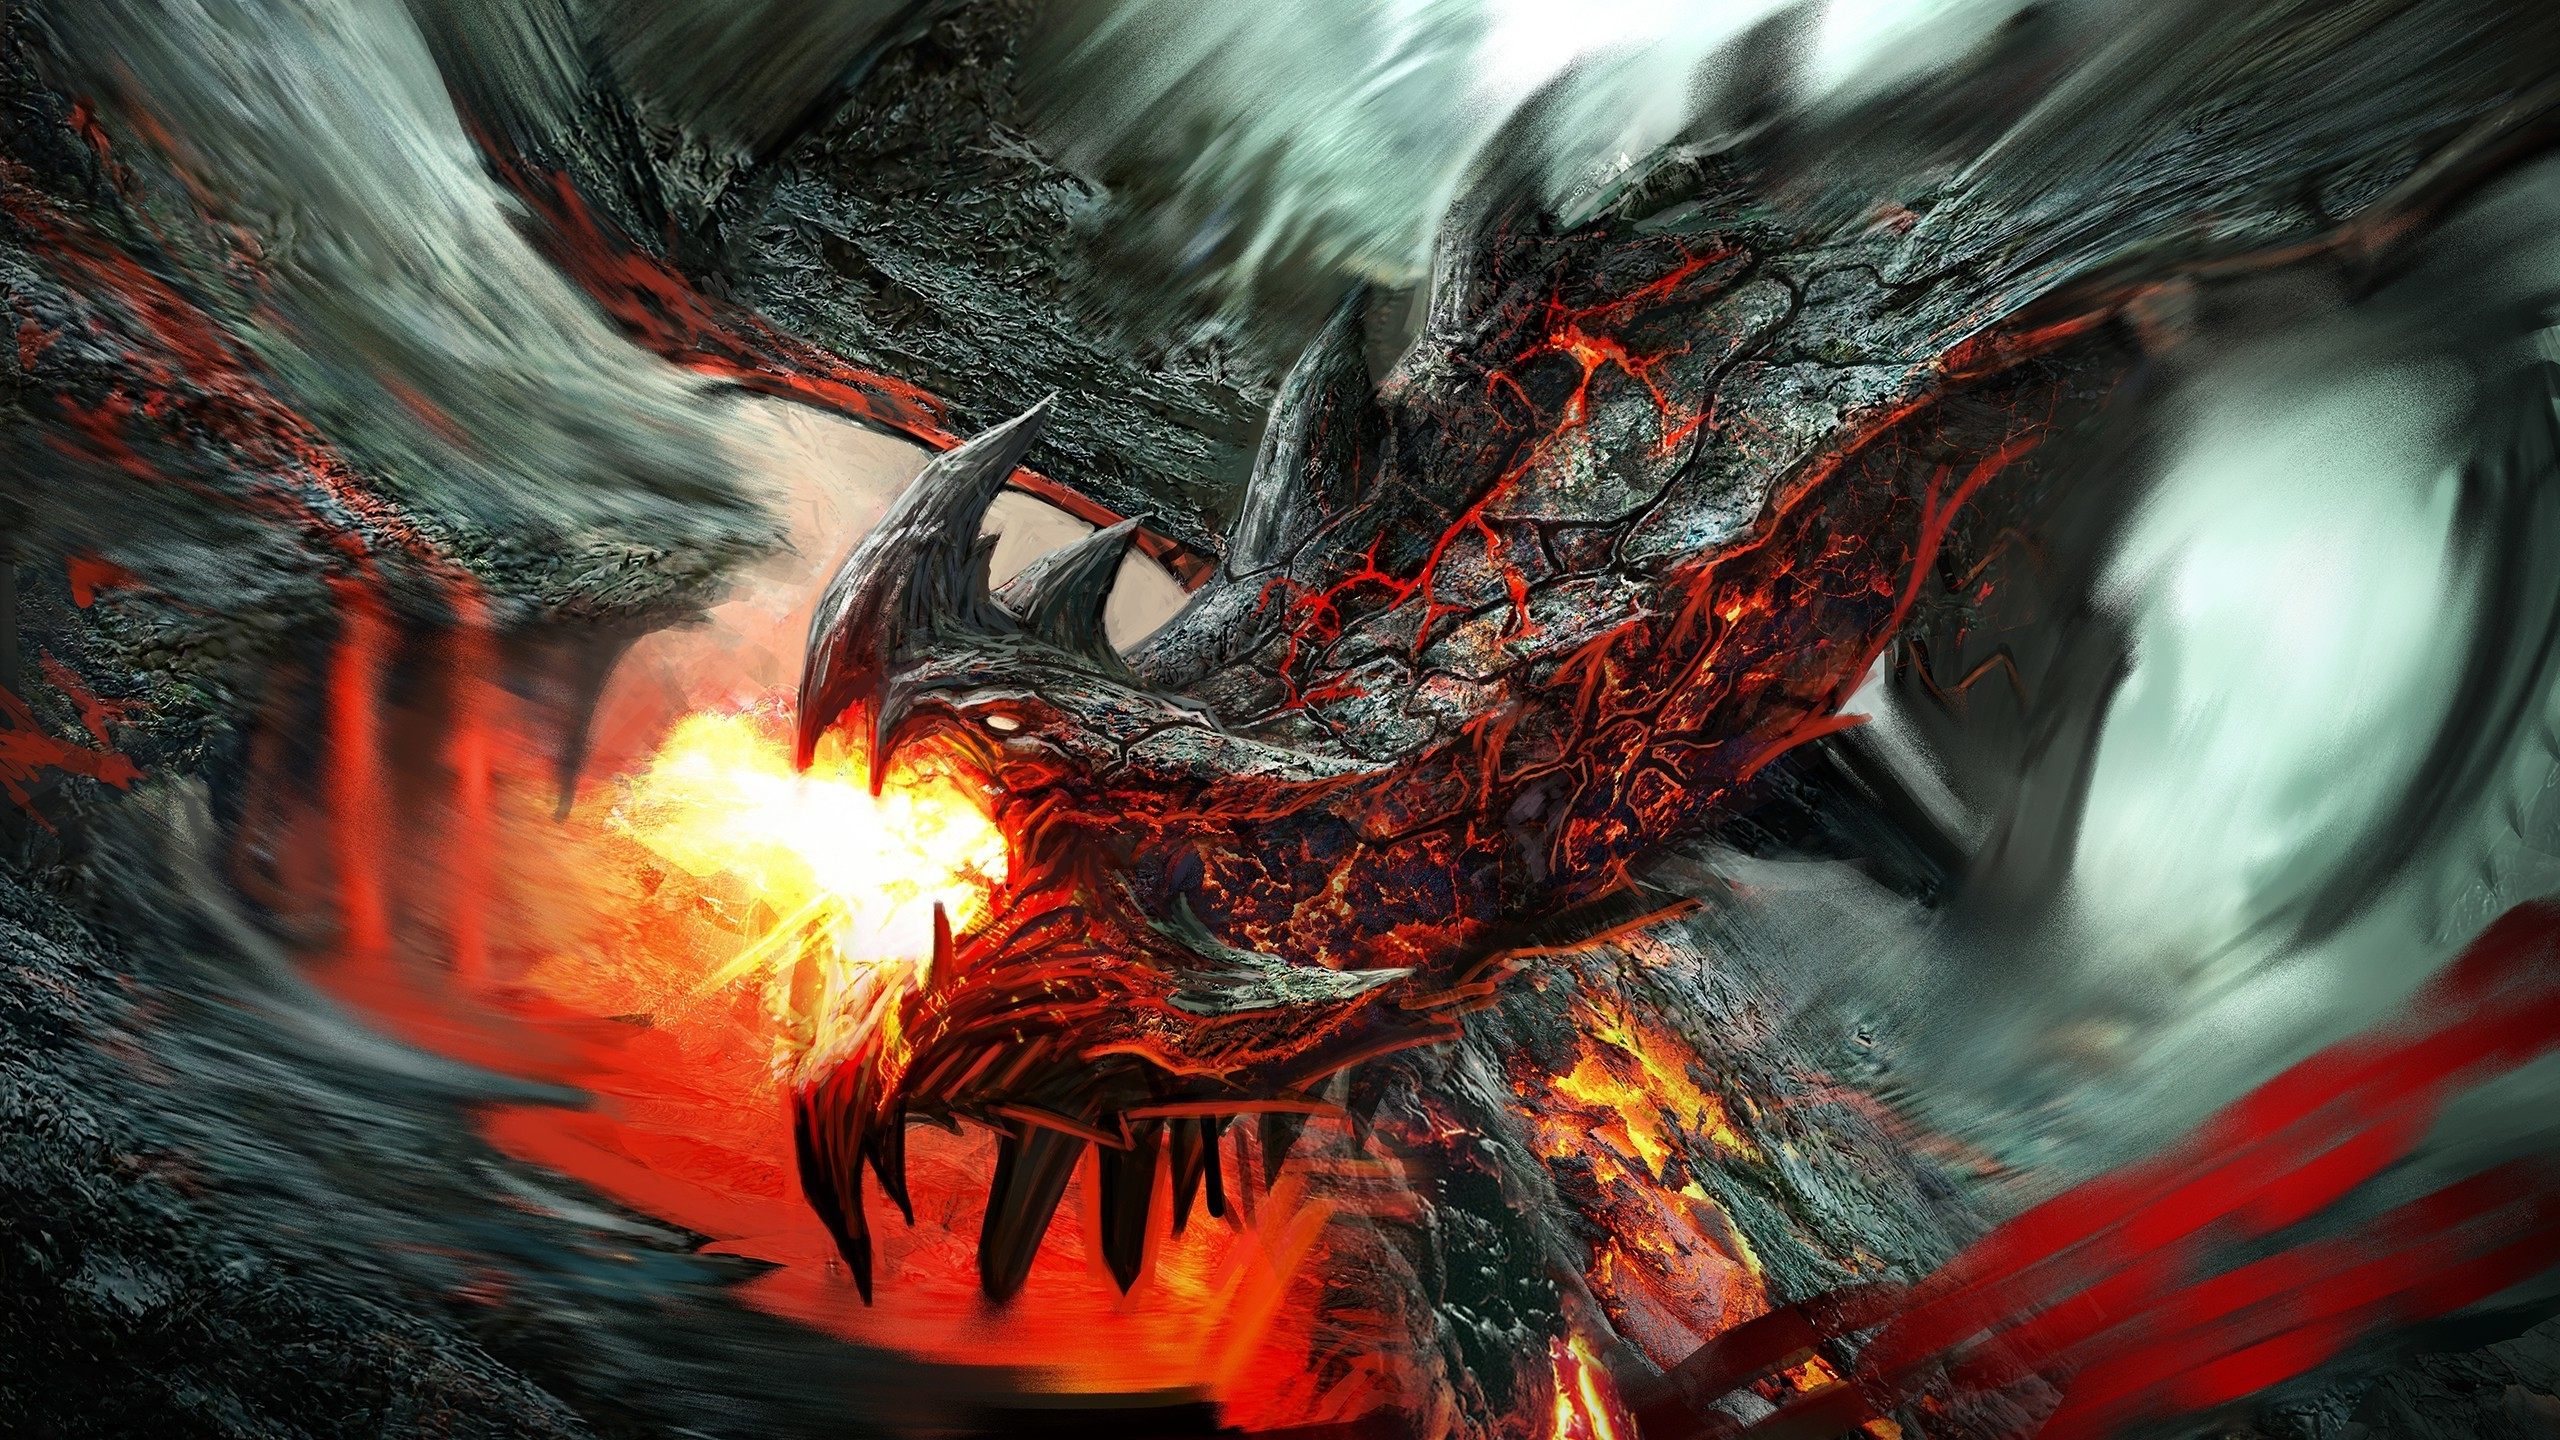 . PlusPng.com Fire Breathing Lava Dragon HD Wallpaper 2560x1440 - Fire Breathing Dragon PNG HD